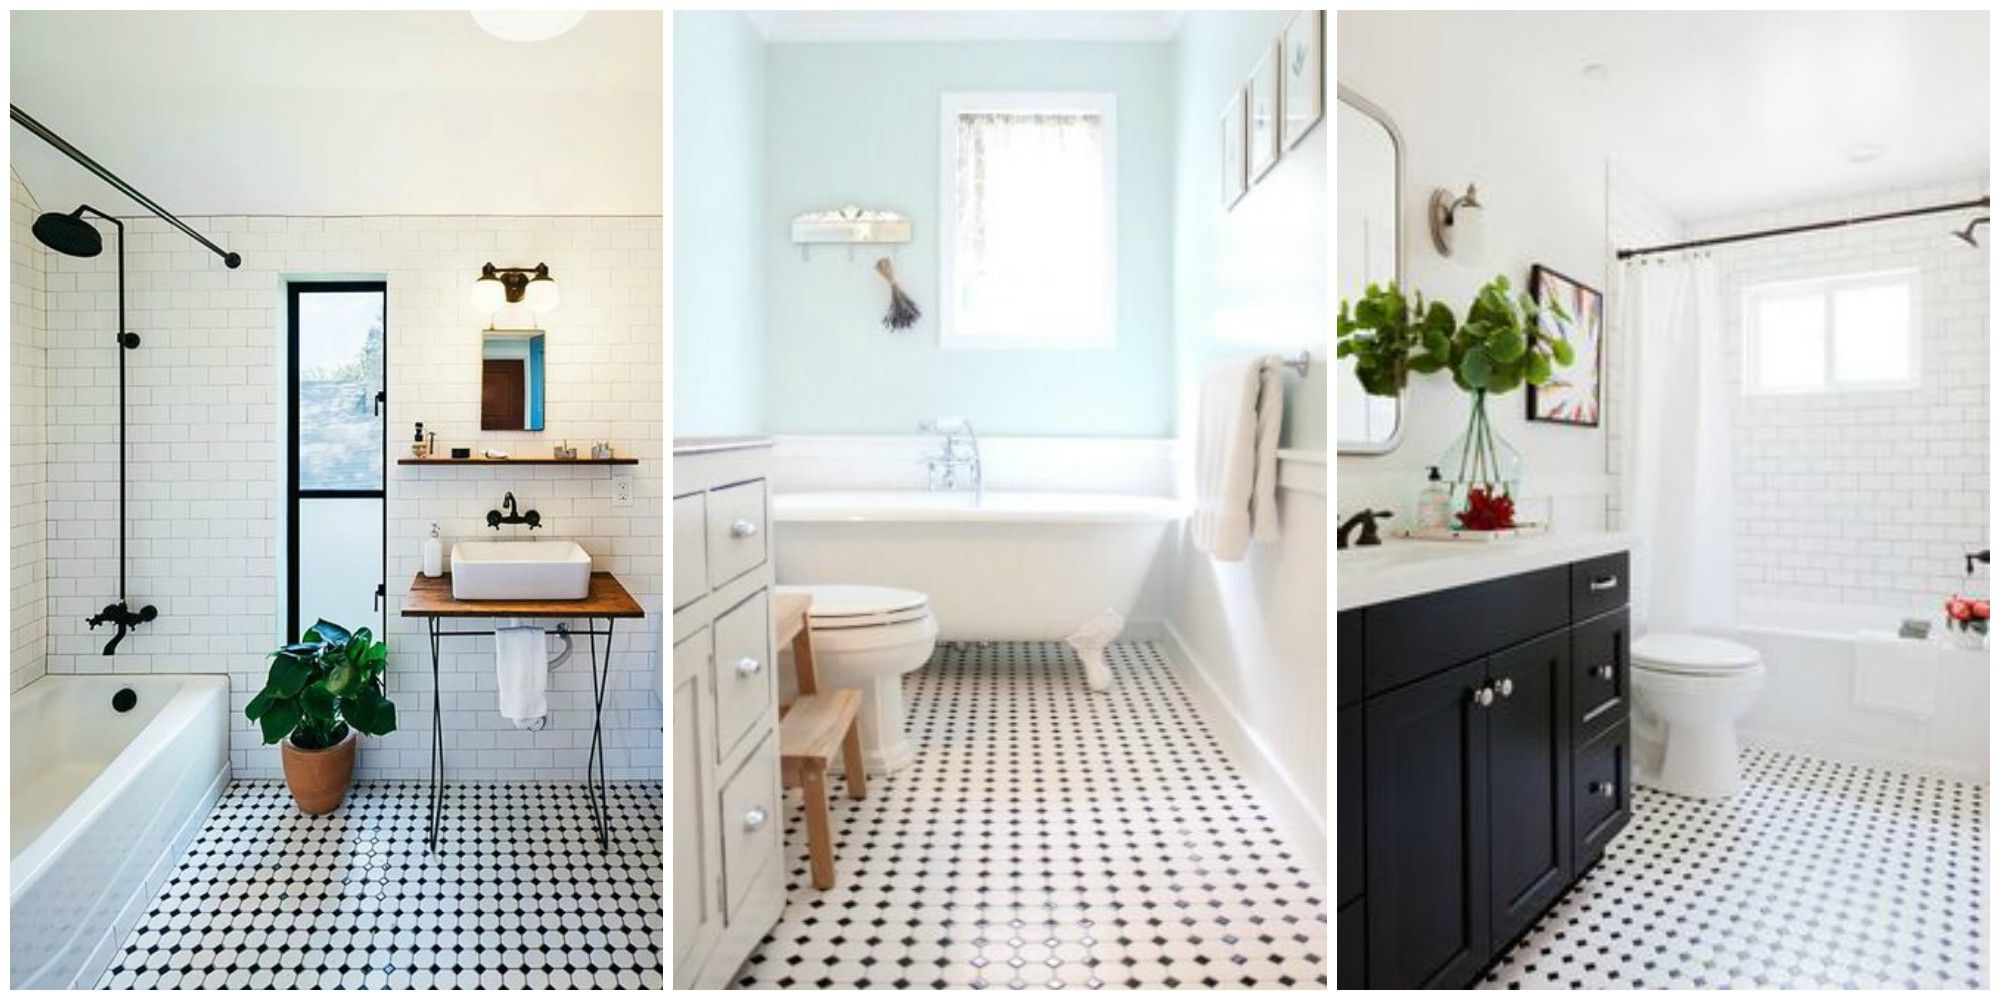 classic black and white tiled bathroom